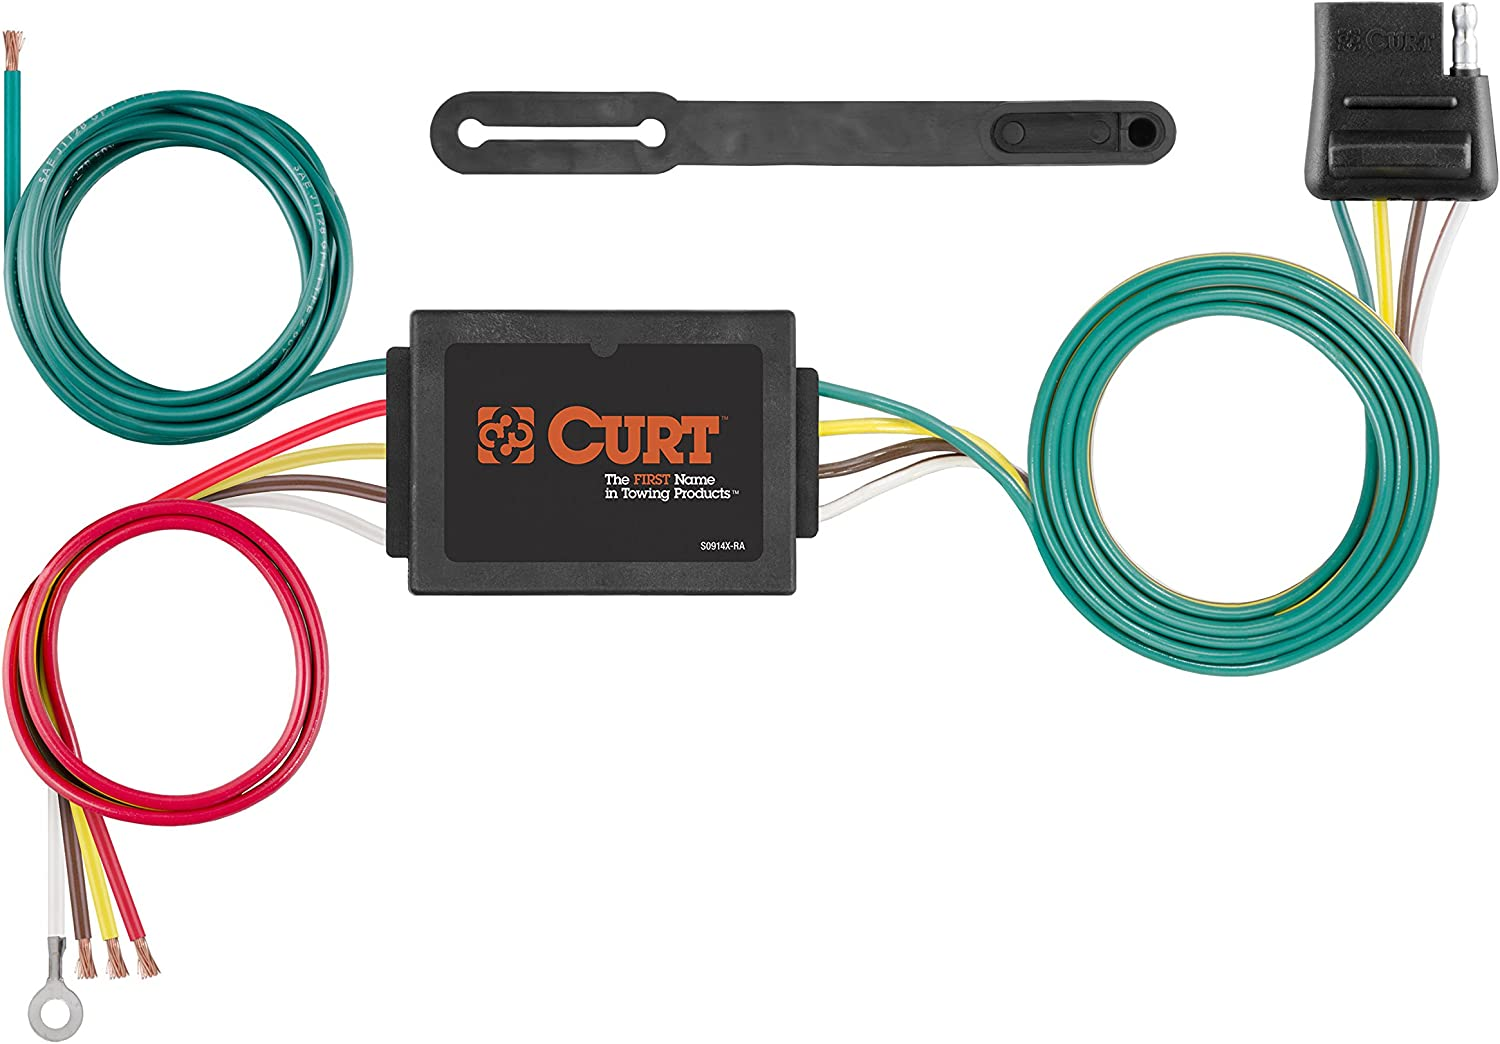 13182 /& 56133 CURT Class 3 Trailer Hitch Bundle with Wiring for 2011-2013 Dodge Durango